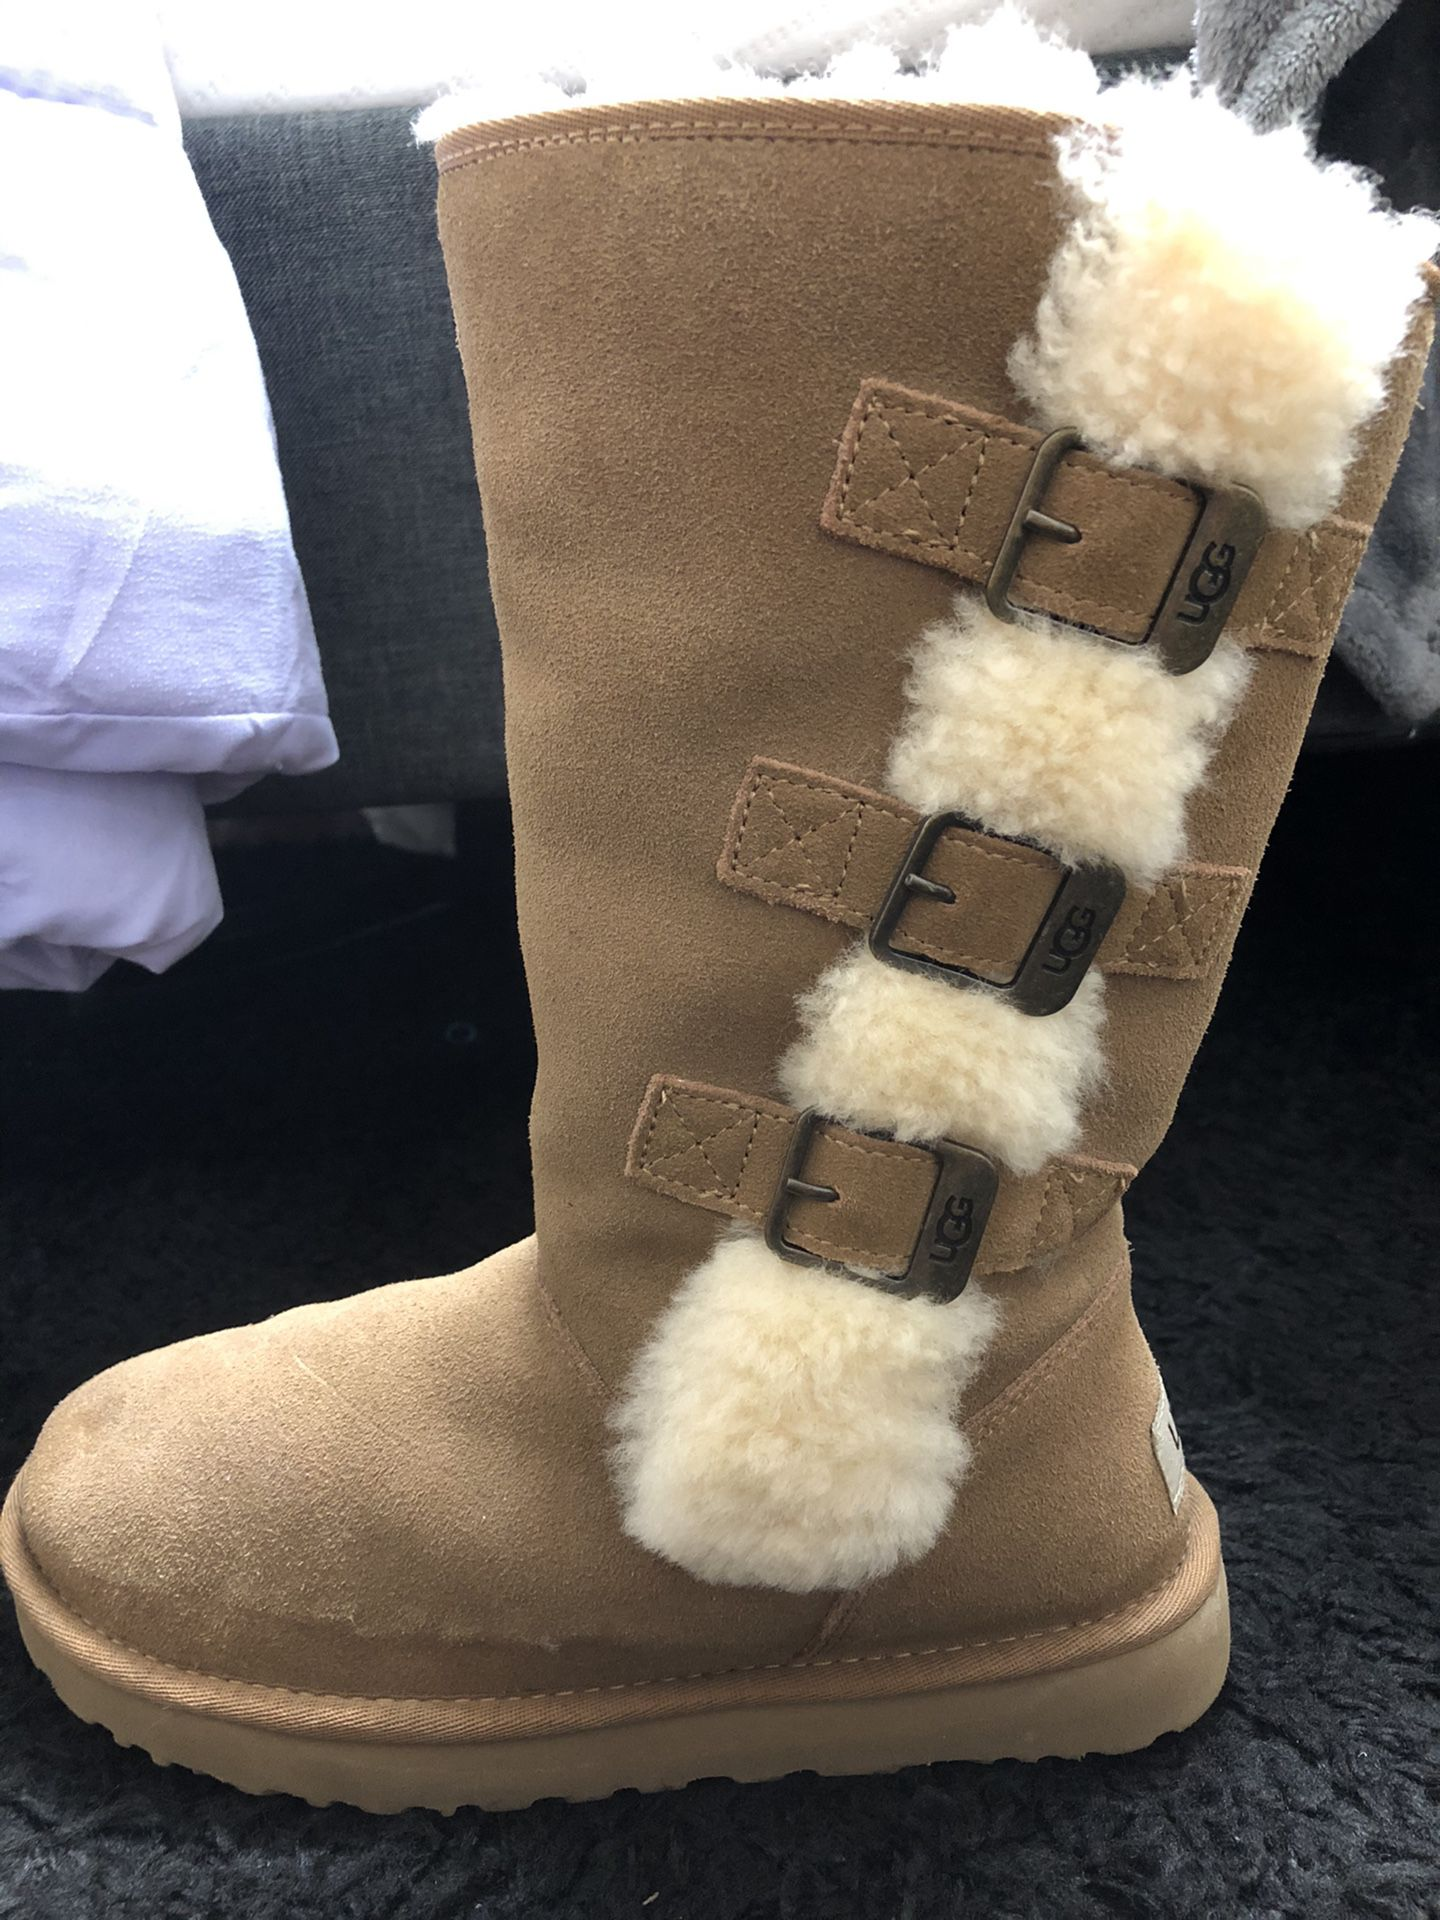 NEW LOW PRICE***KLEA Ugg Boot- Tall